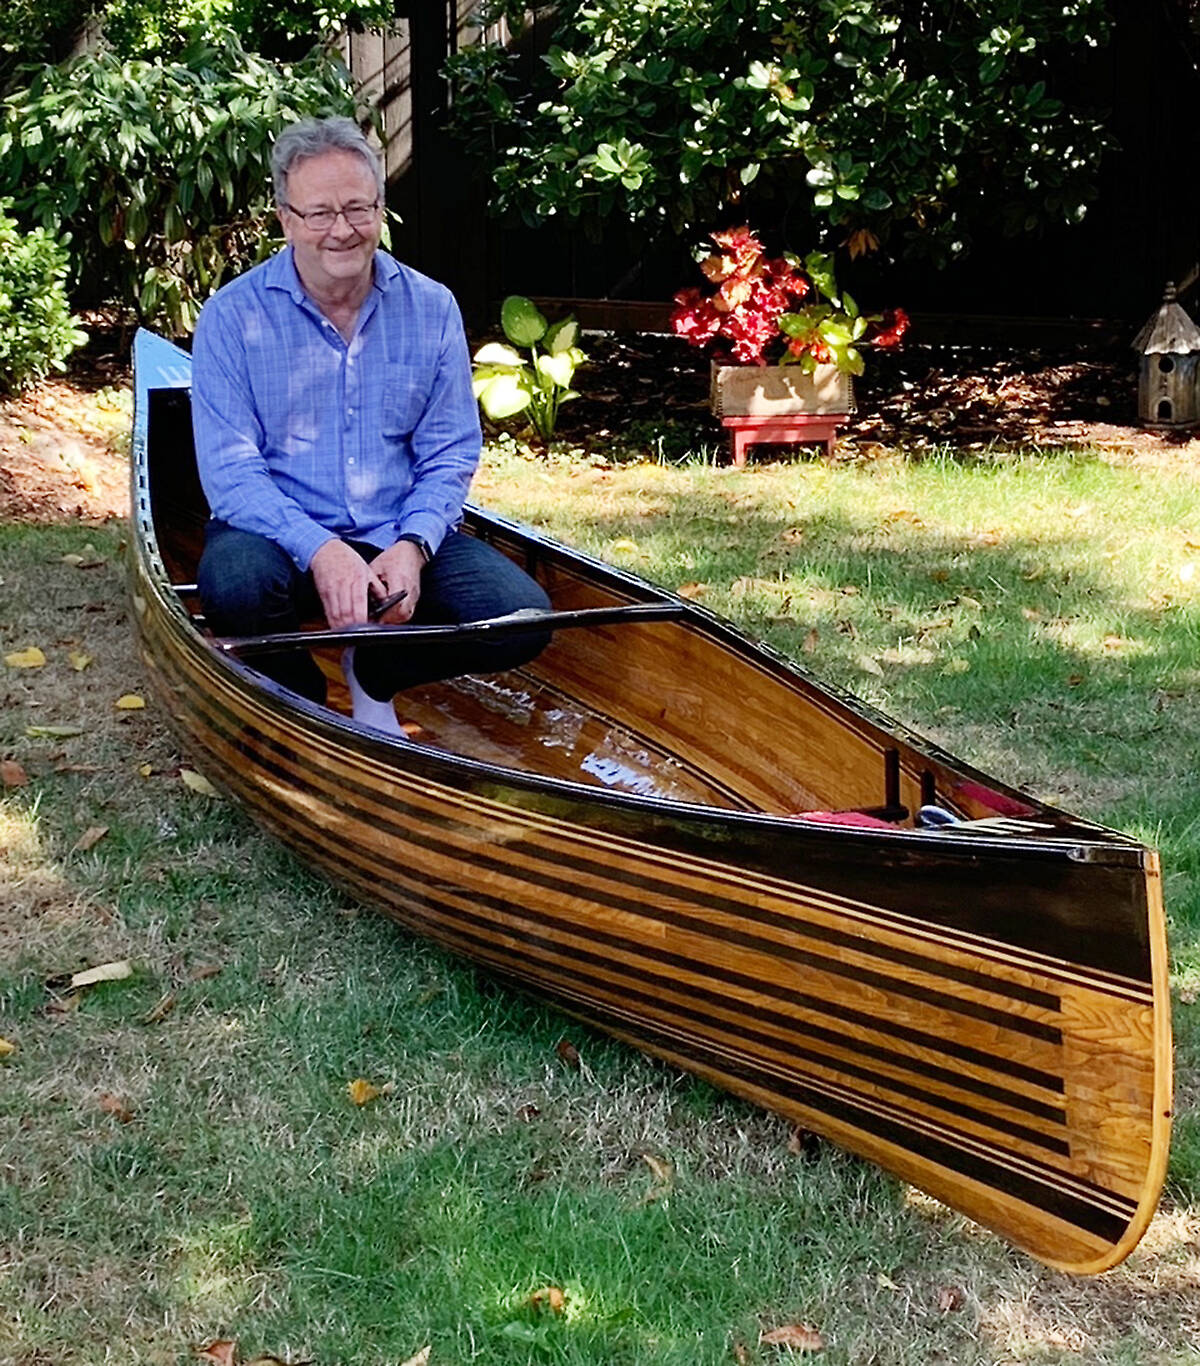 Surrey resident George Klassen sits in the canoe he made with the wood of old pianos. A piano tuner by trade, Klassen began making the canoe near the start of the COVID-19 pandemic, and finished building it this month. (submitted photo)